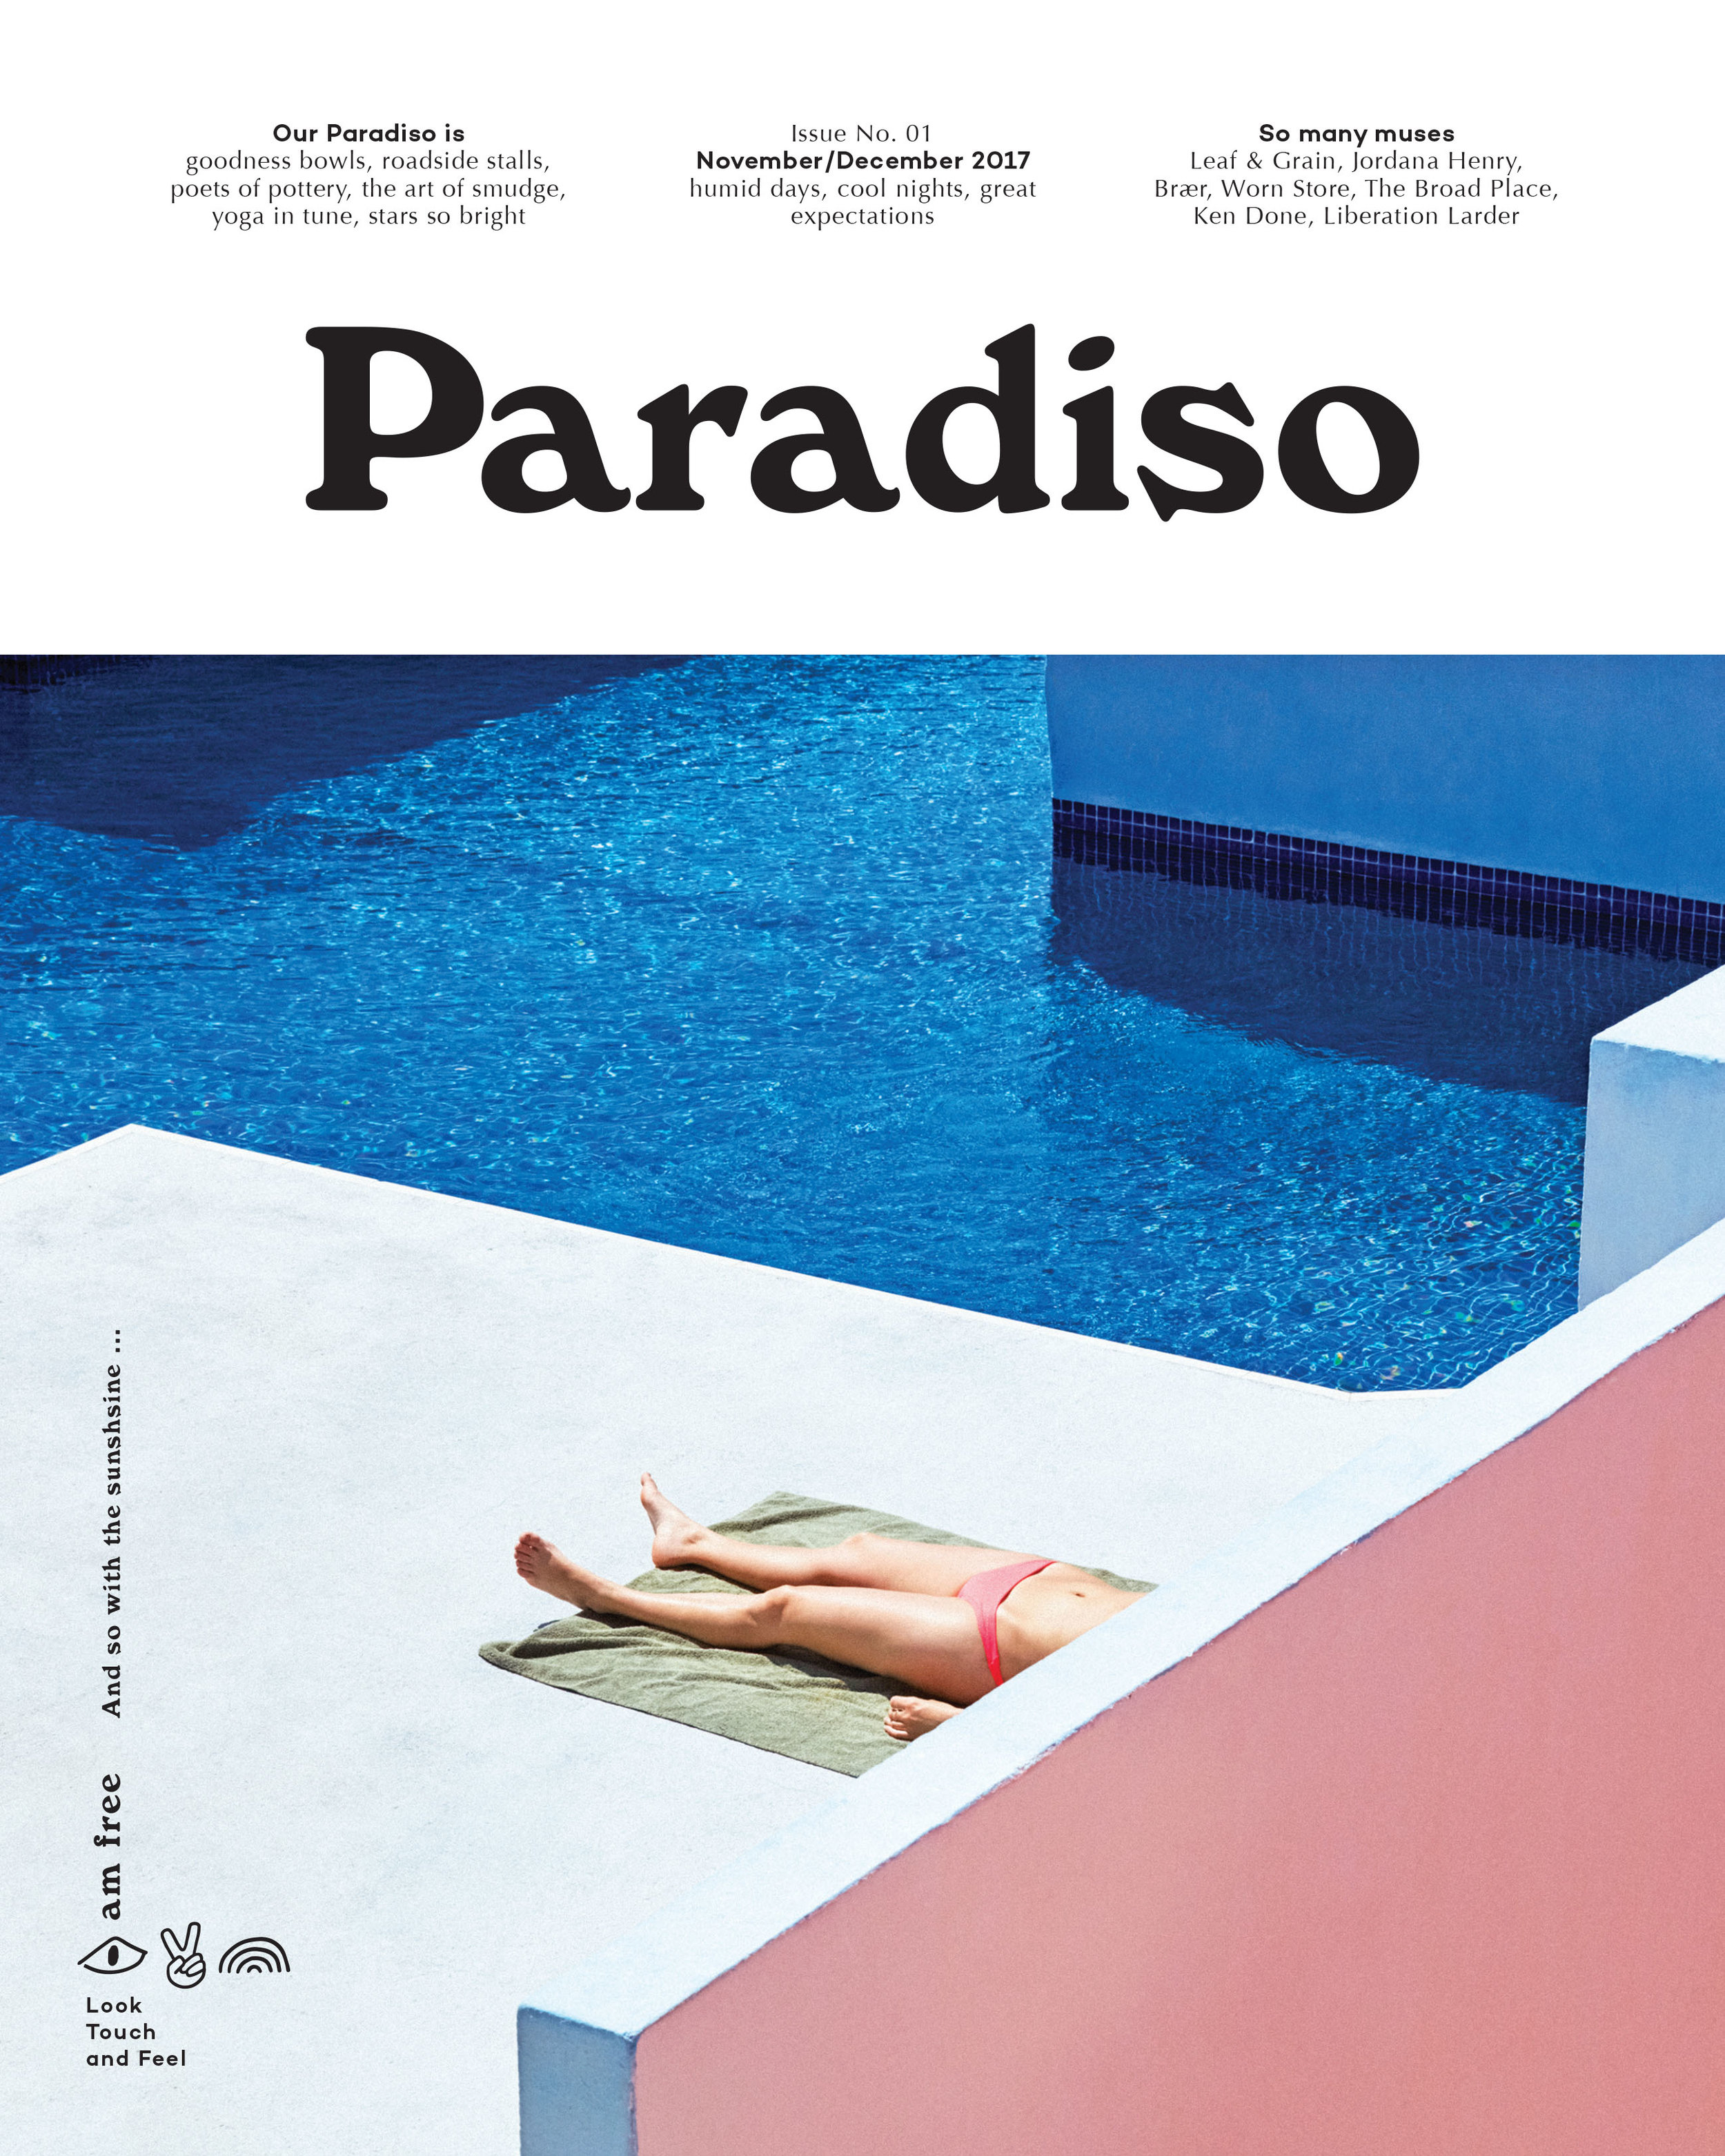 Paradiso Issue 01: And so with the sunshine …